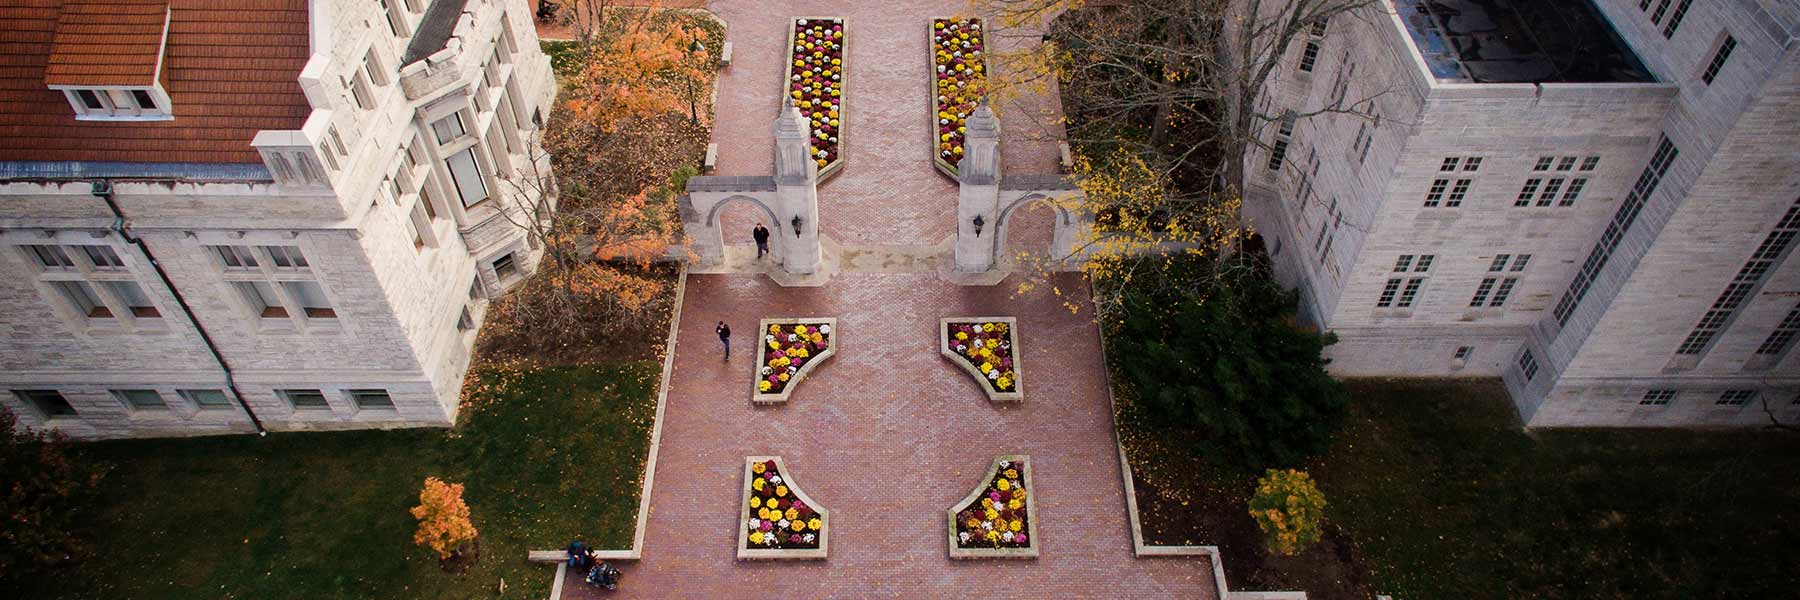 Aerial view of the historic Sample Gates on the Indiana University Bloomington campus.